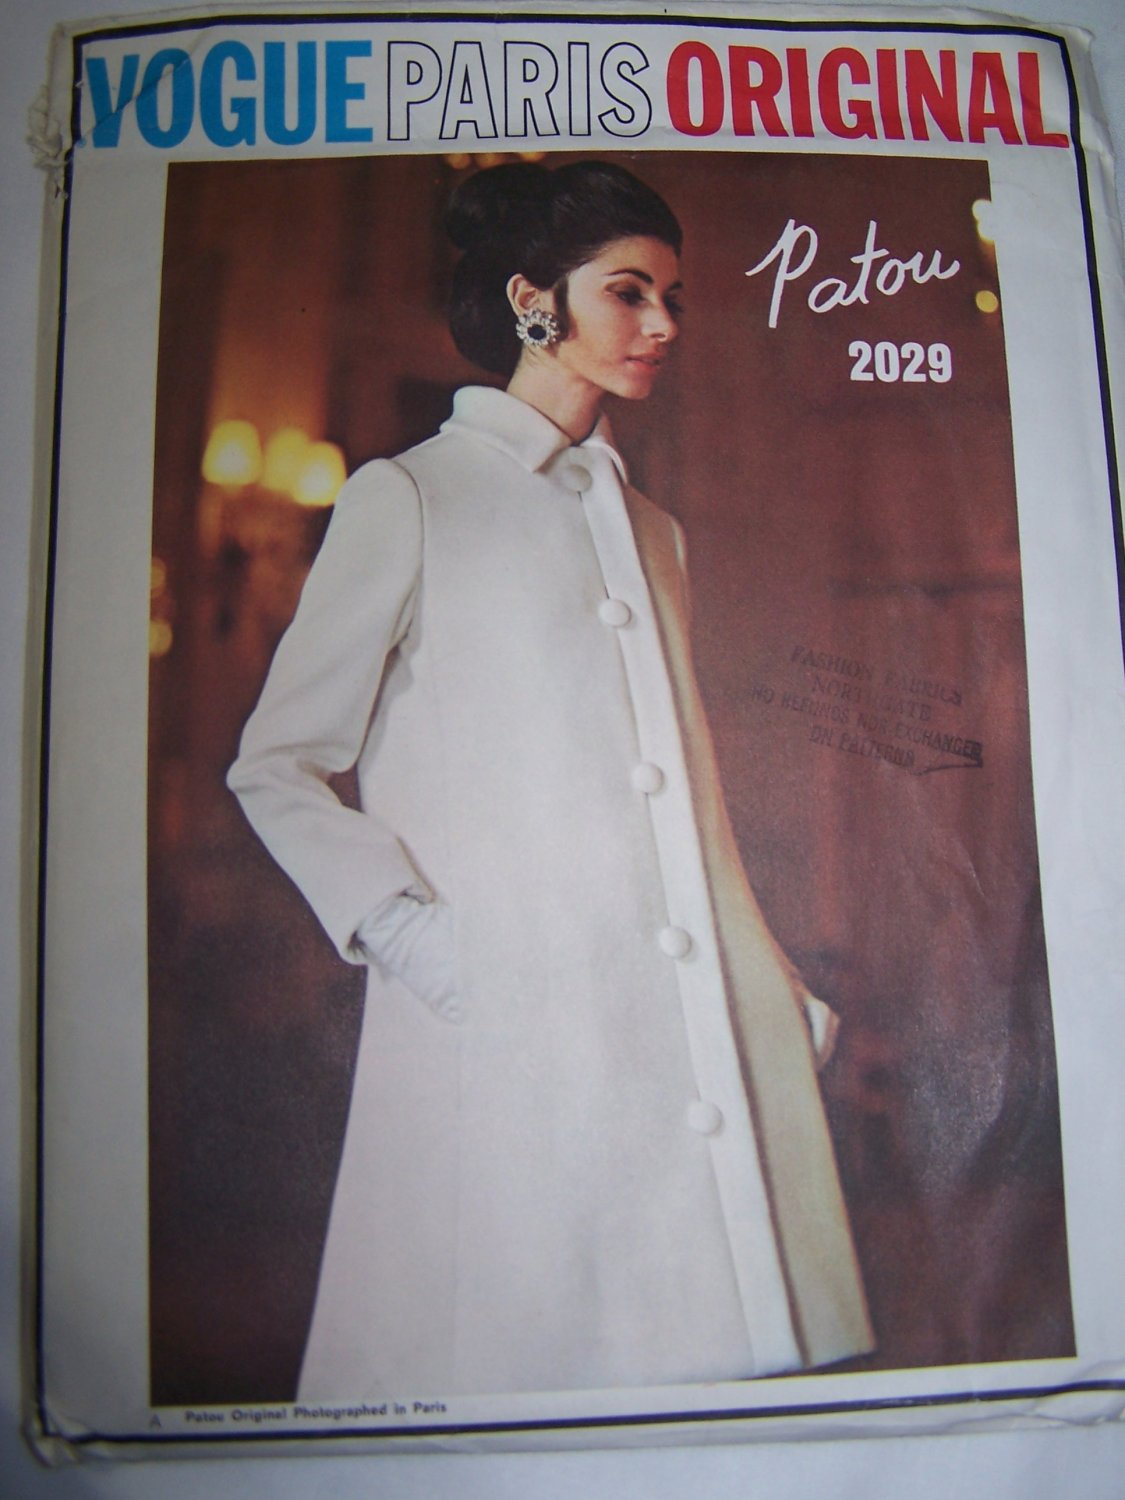 1960's Vintage Vogue Paris Original Sewing Pattern 2029 Patou Dress & Jacket